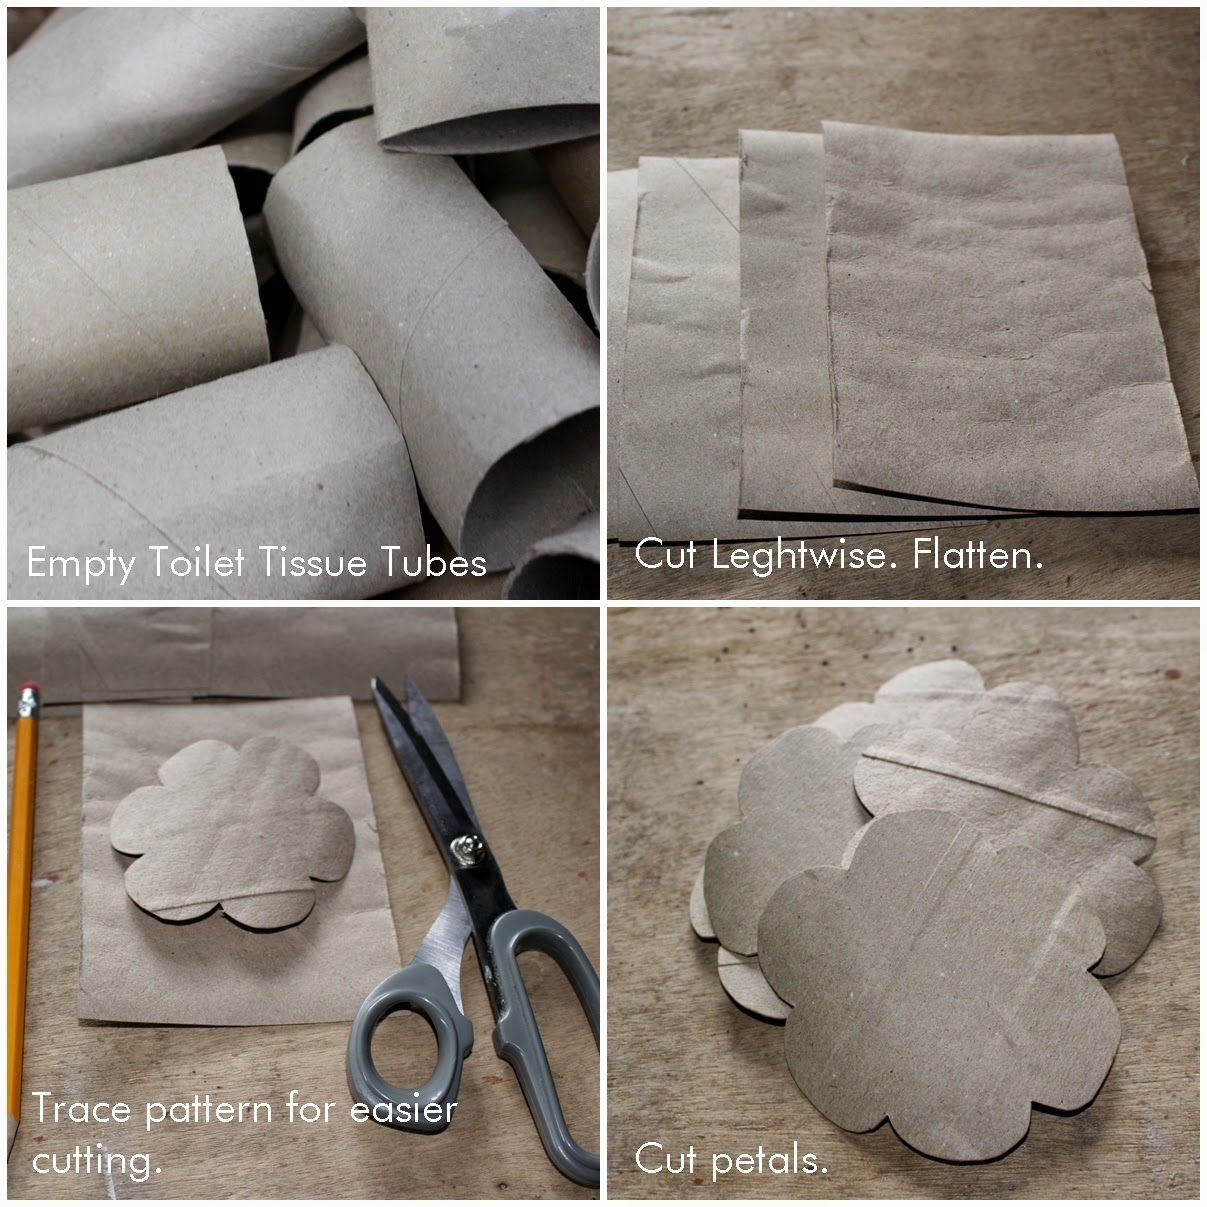 Diy How To Make Roses Using Empty Toilet Tissue Tubes Reduce Reuse Recycle Replenish Toilet Paper Roll Crafts Toilet Paper Roll Art Toilet Paper Crafts